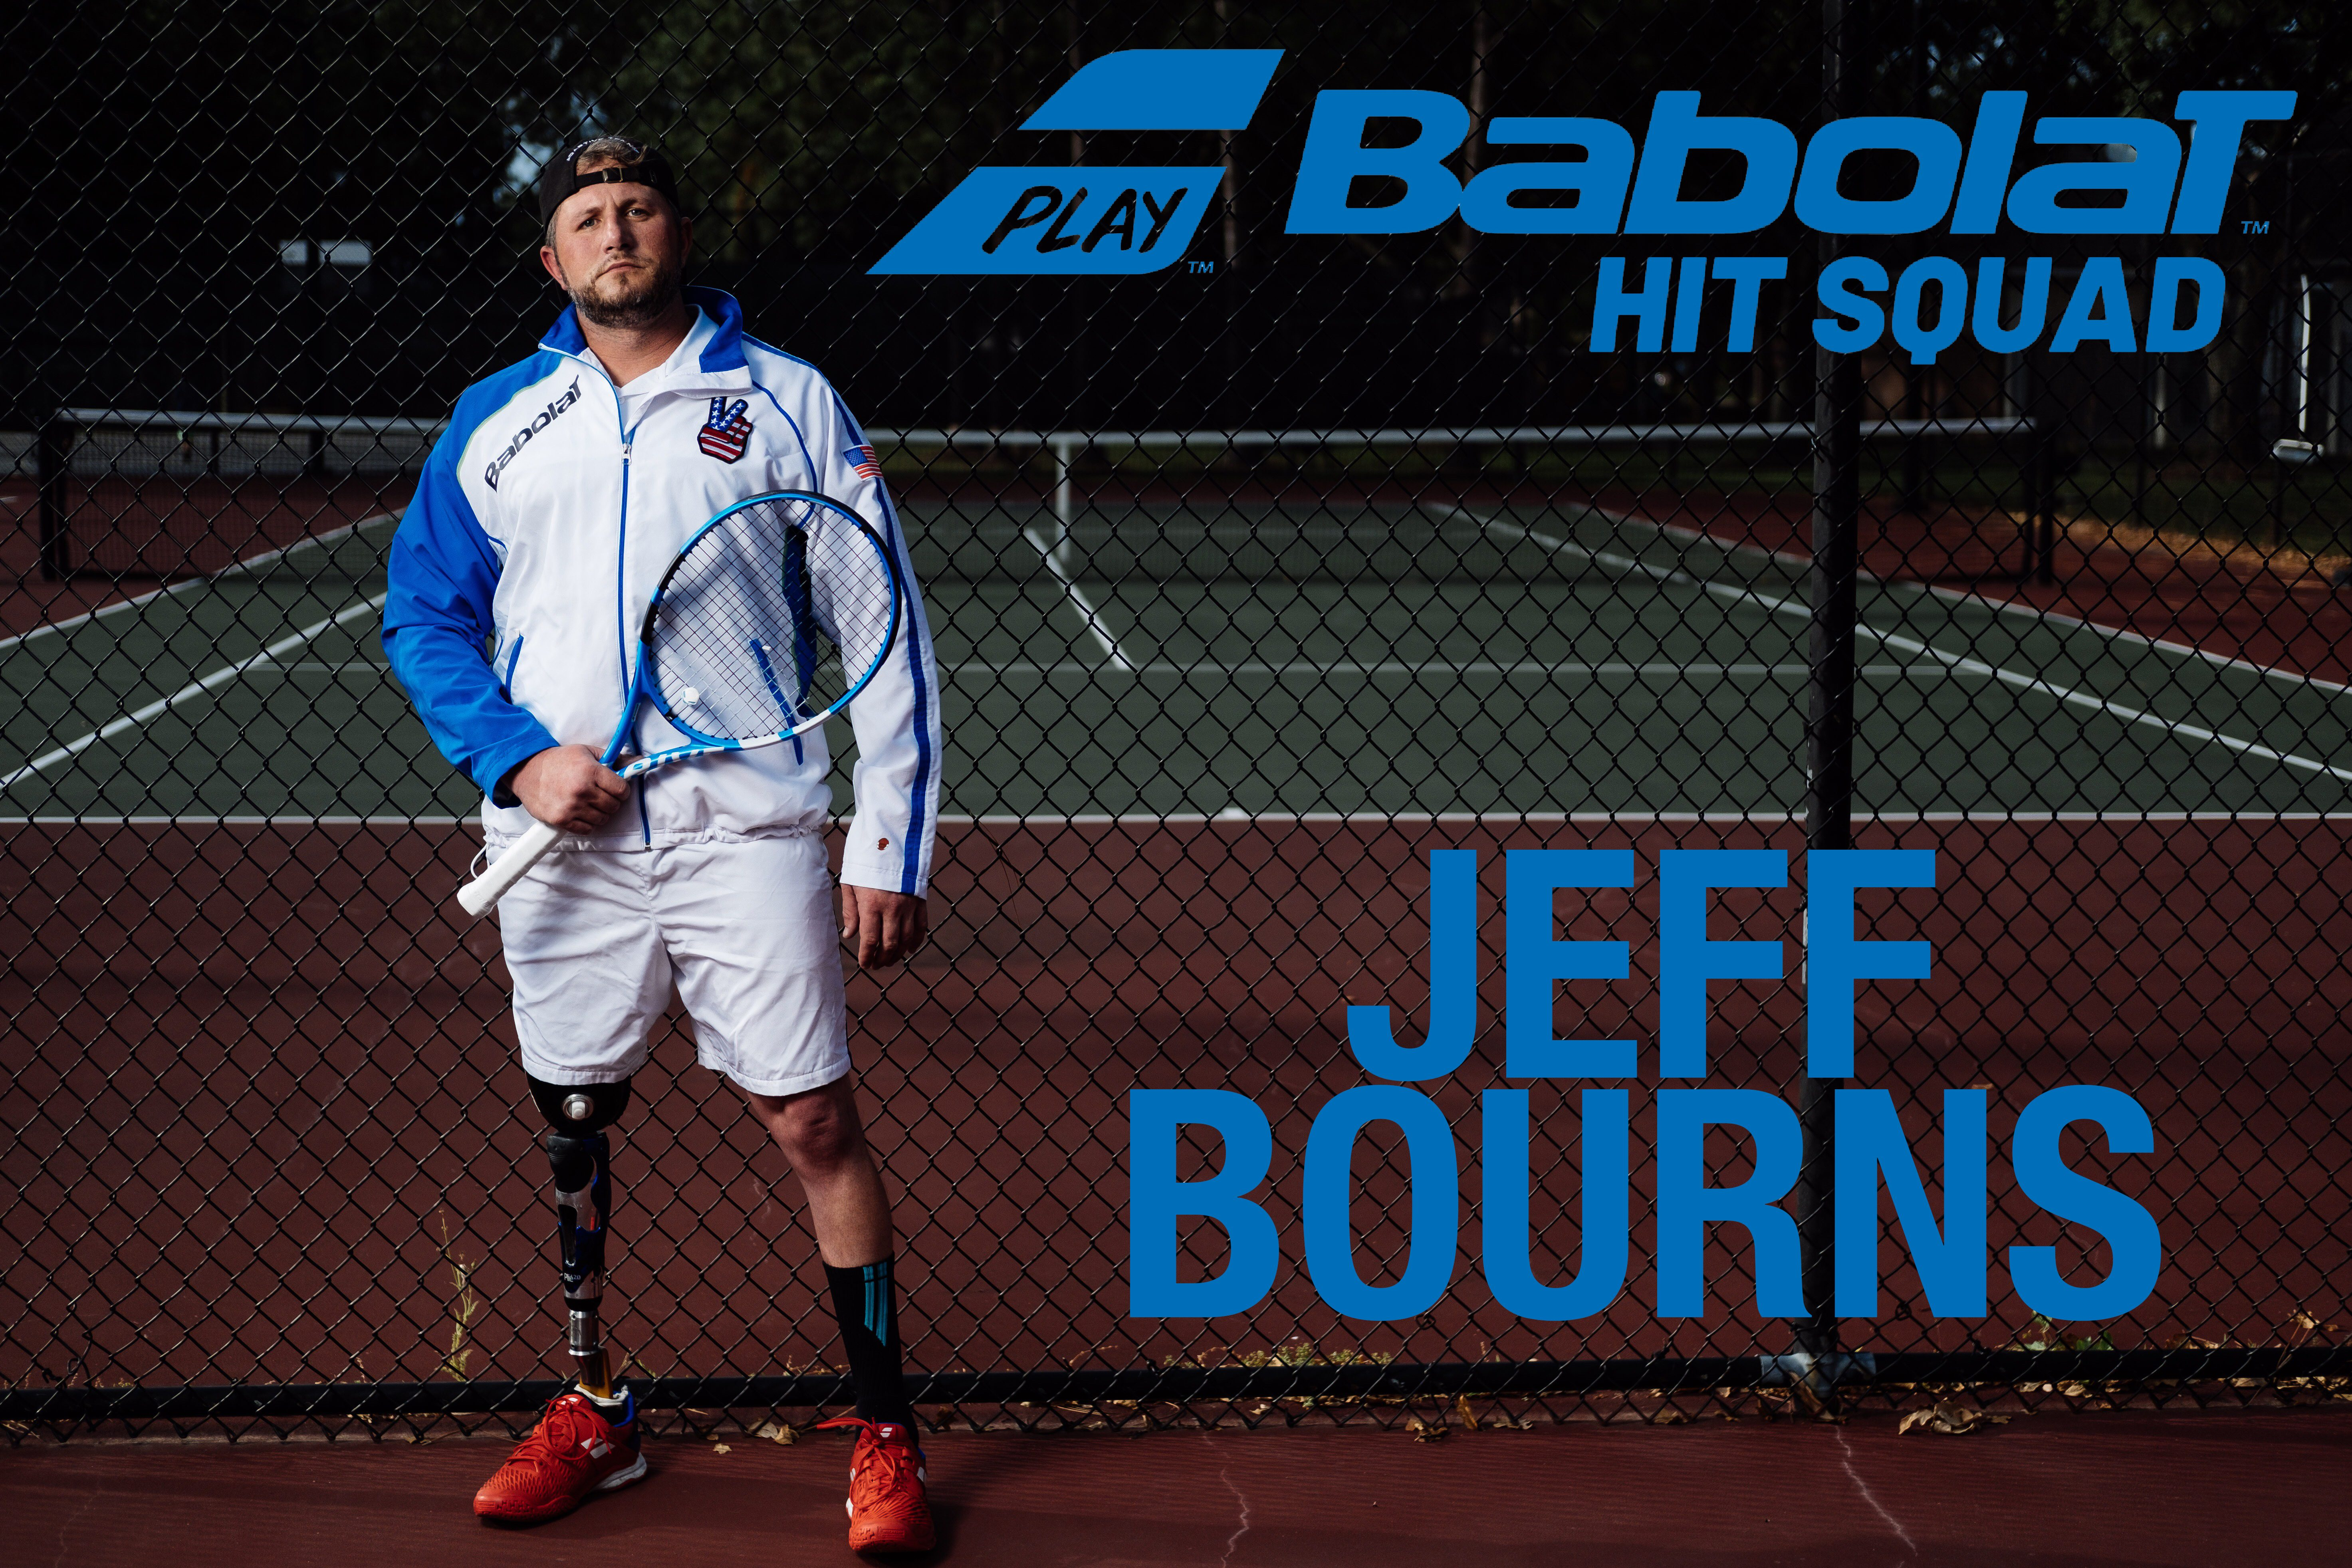 Jeff Bourns Foundation